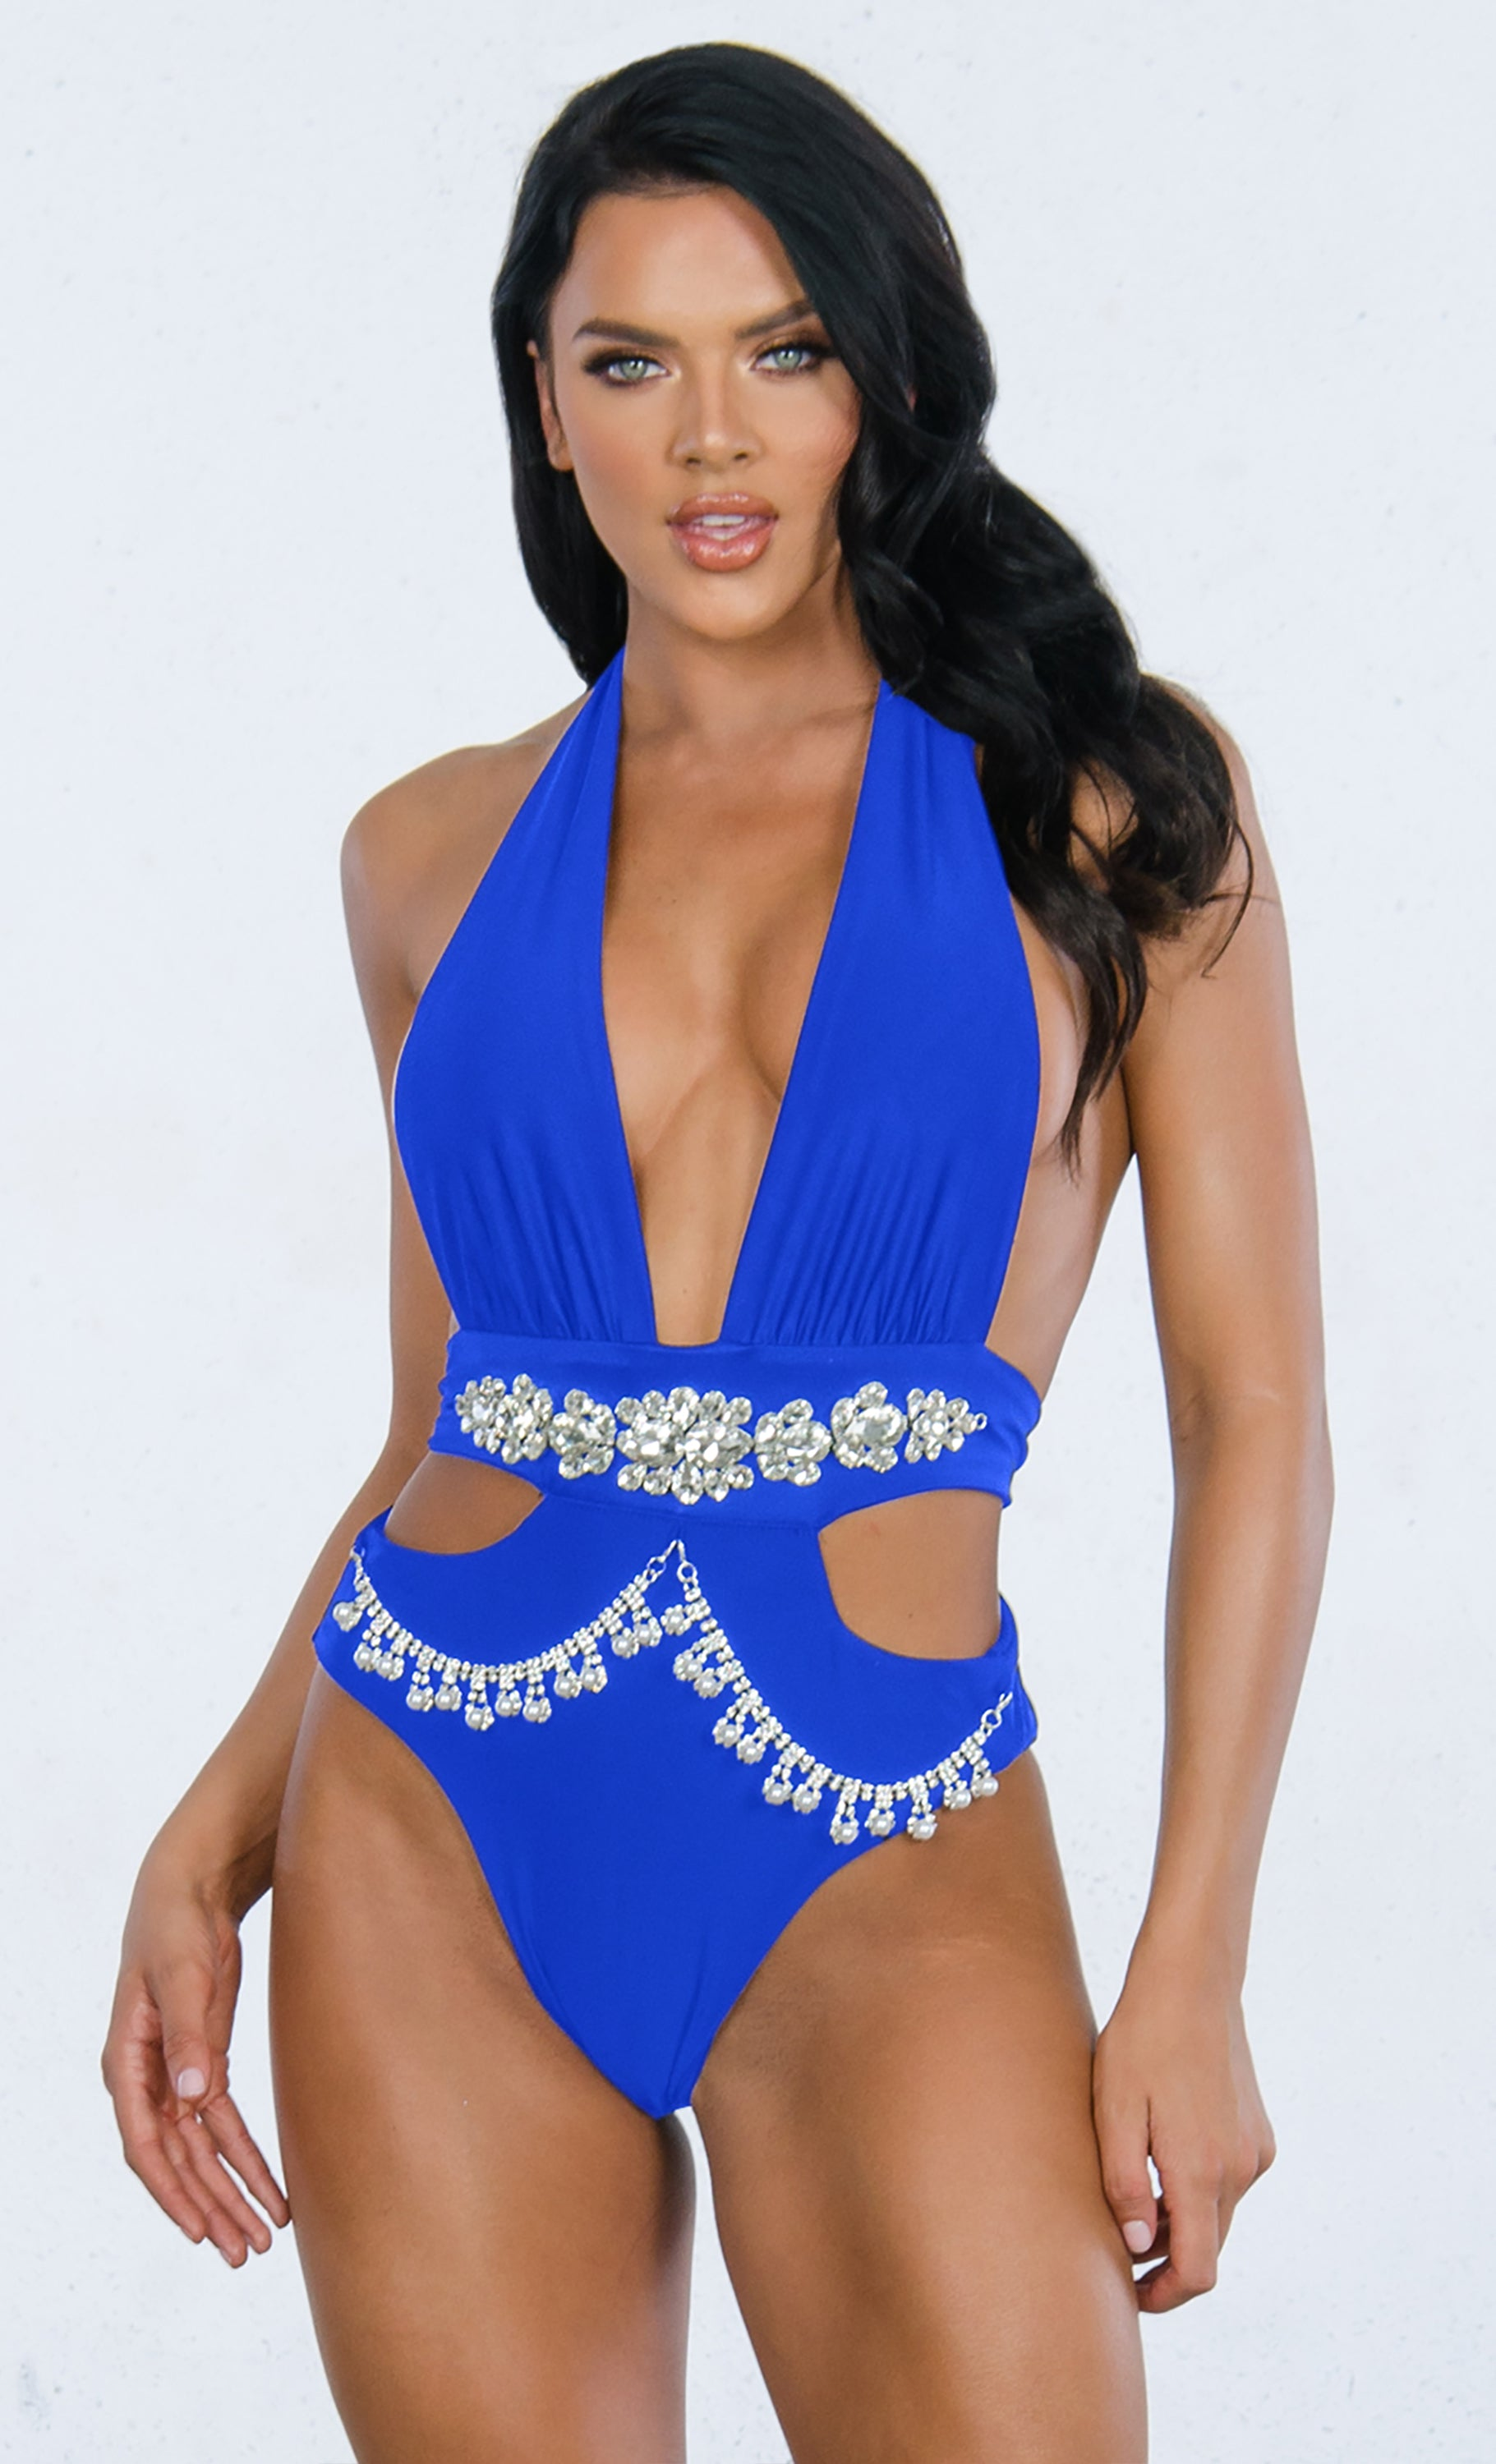 c2d7af1f0ad95 Indie XO Shake It Off Royal Blue Rhinestone Beaded Bling Crystal Chain Cut  Out Gemstone Plunge